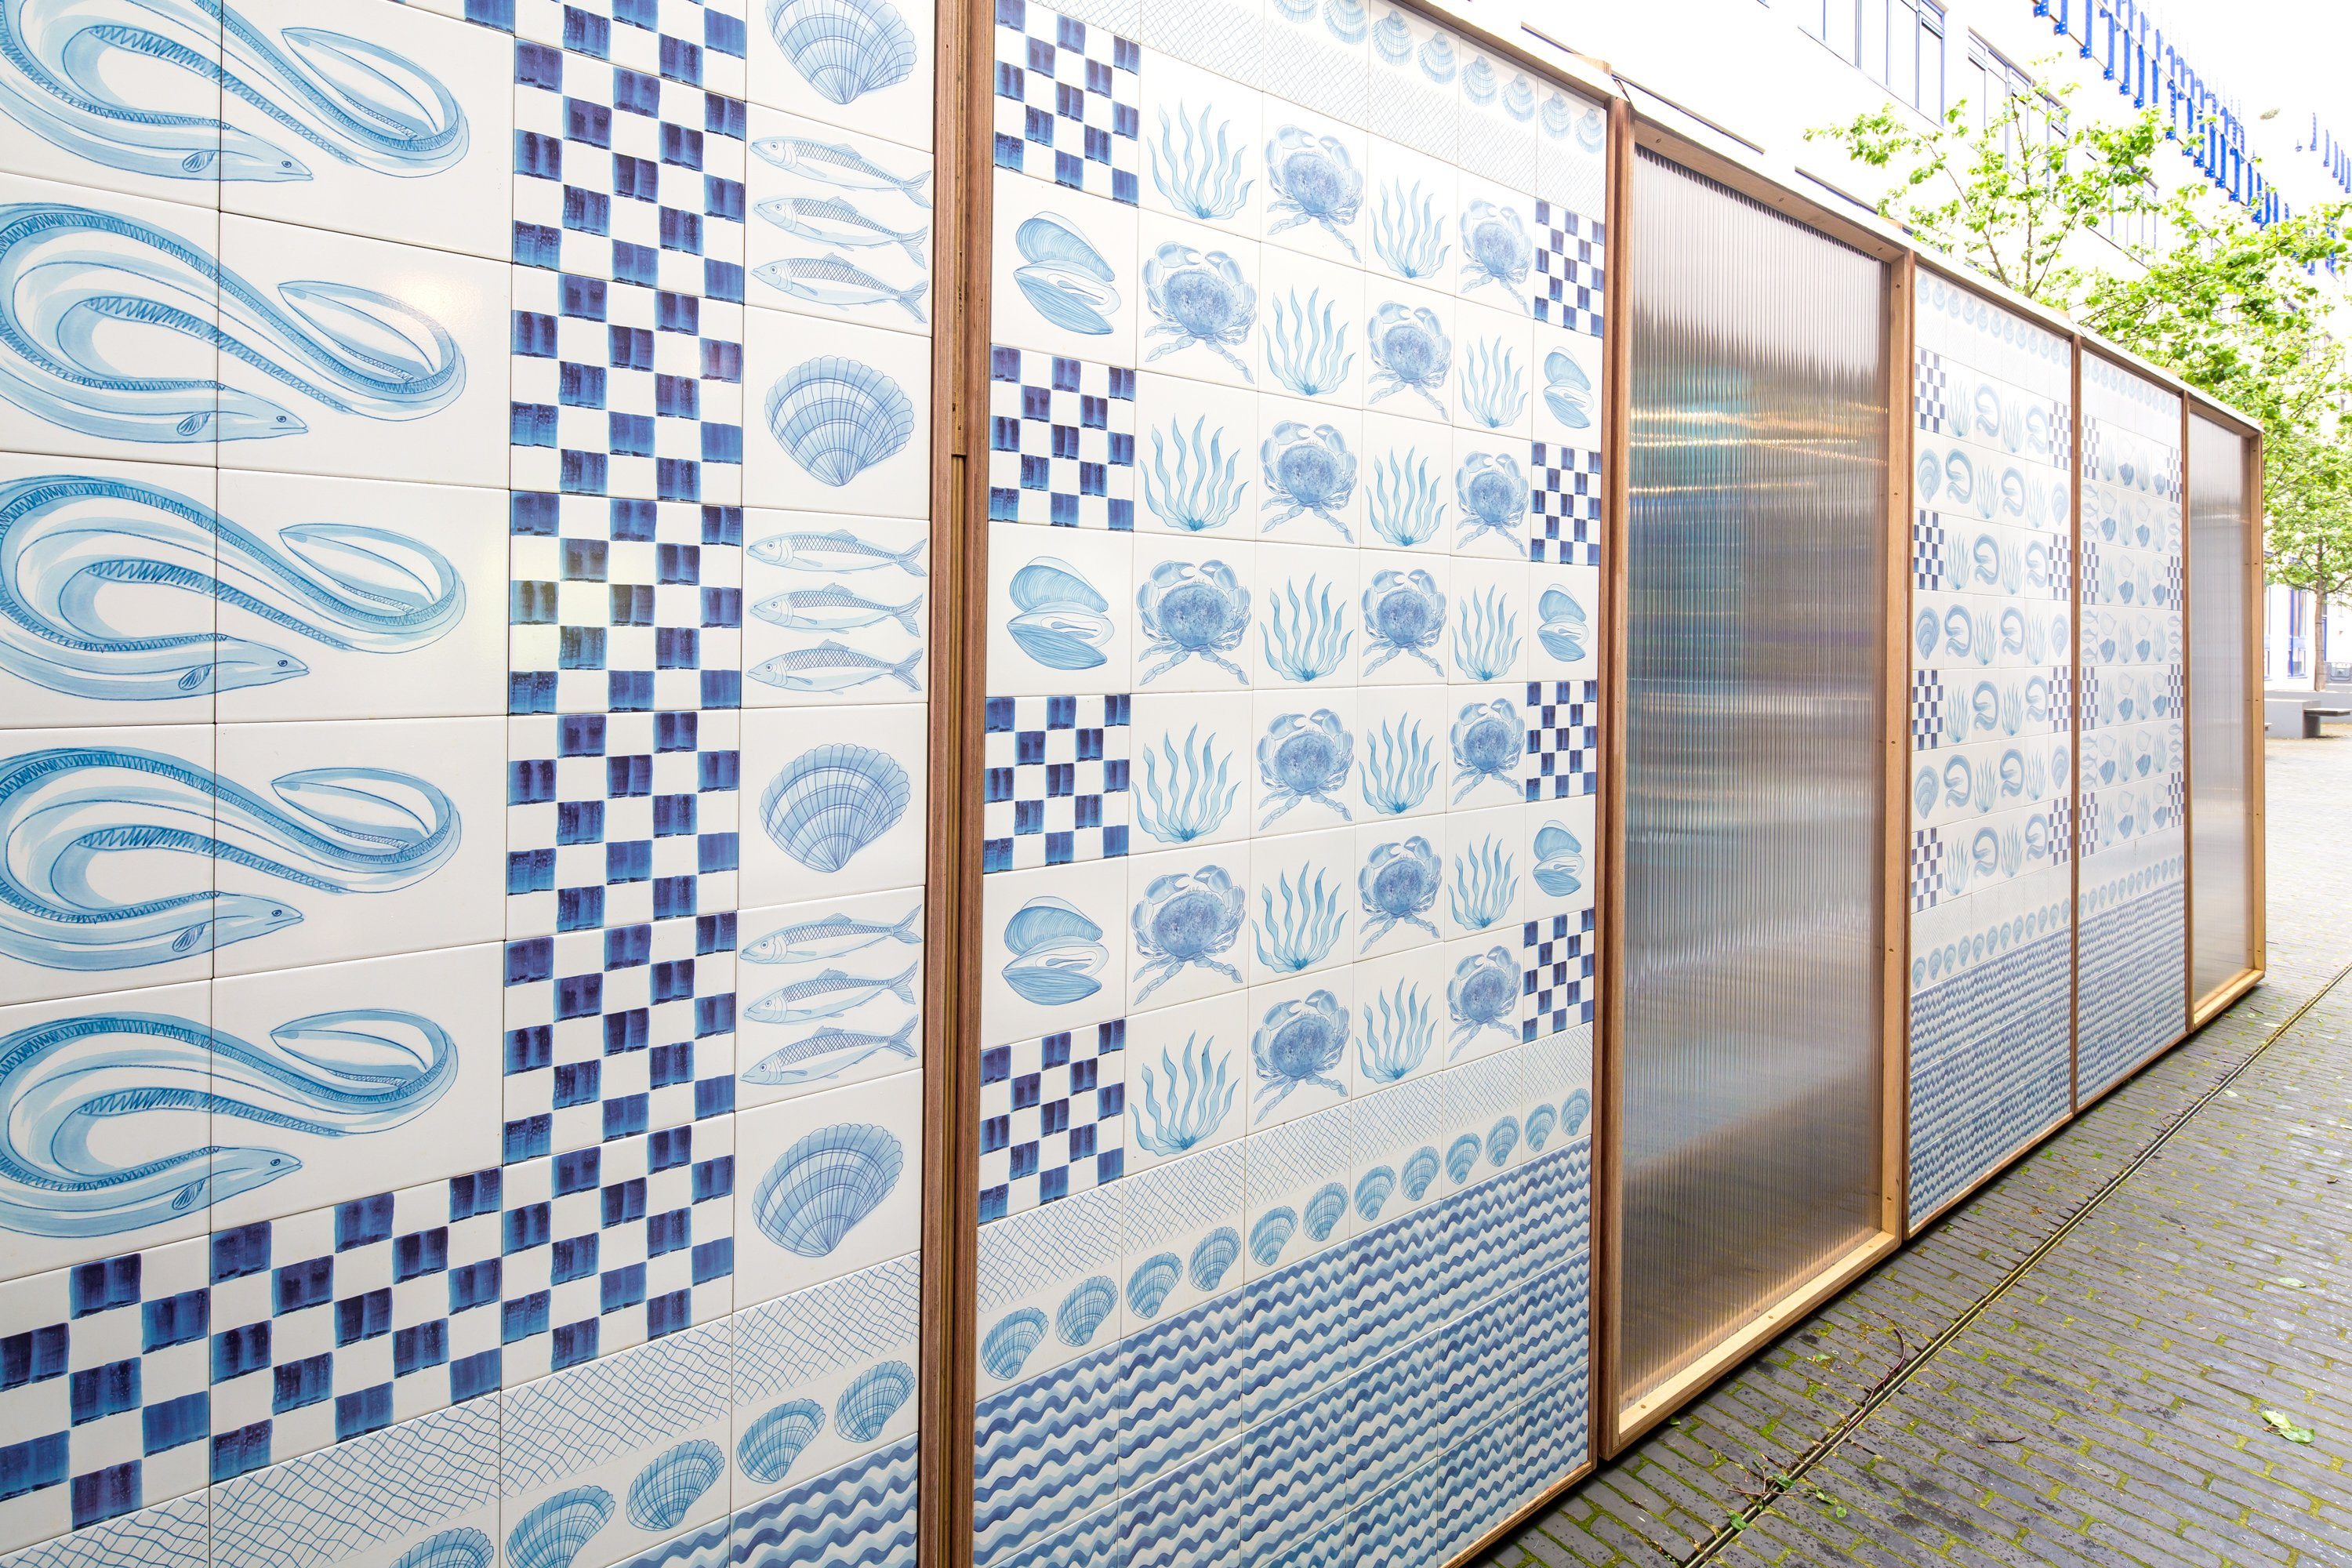 Johnson Tiles The Crafted City Pavilion Unveiled At